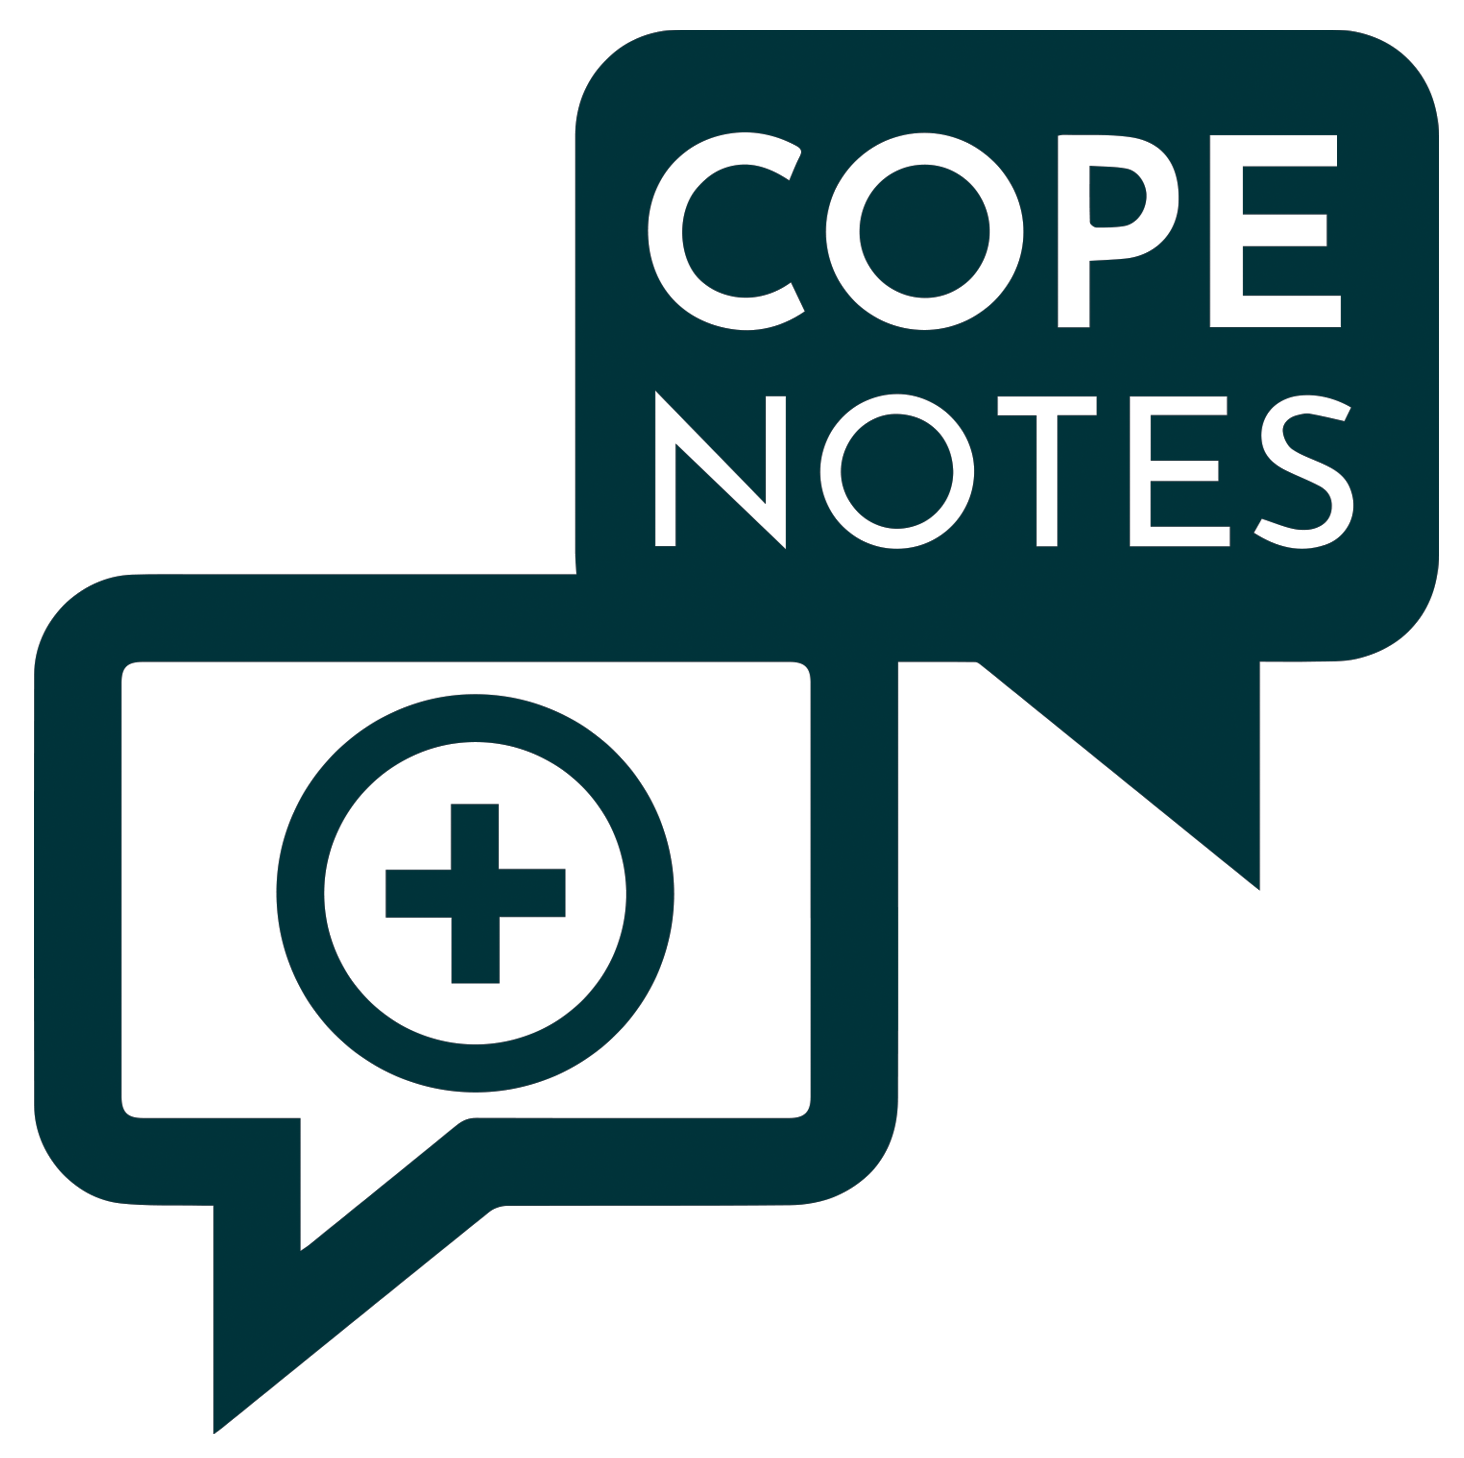 cope notes logo.png